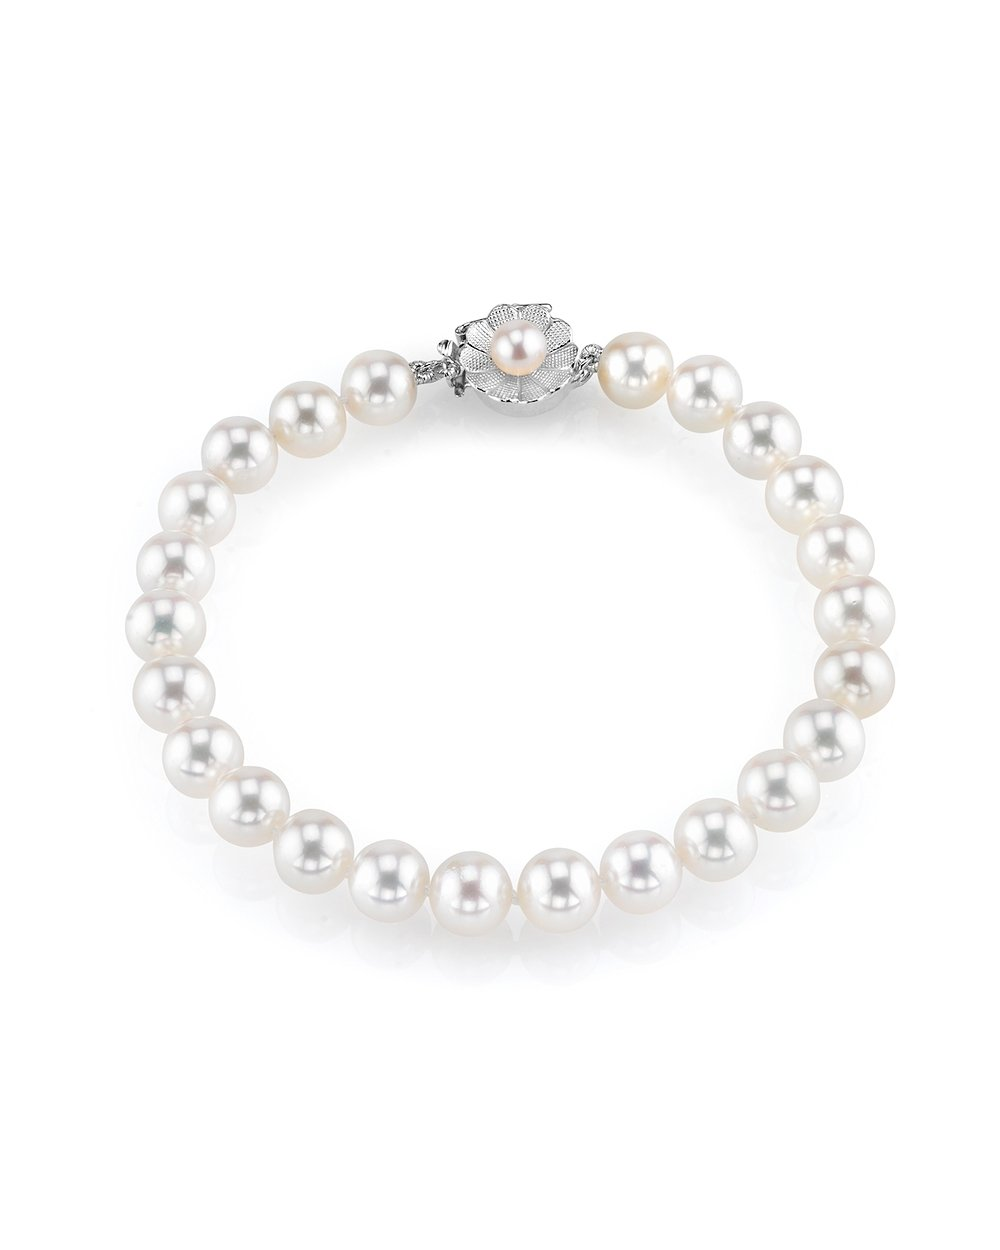 THE PEARL SOURCE AAA Quality 8-9mm Round White Freshwater Cultured Pearl Bracelet with 14K White Gold Flower Clasp in 7'' Length for Women